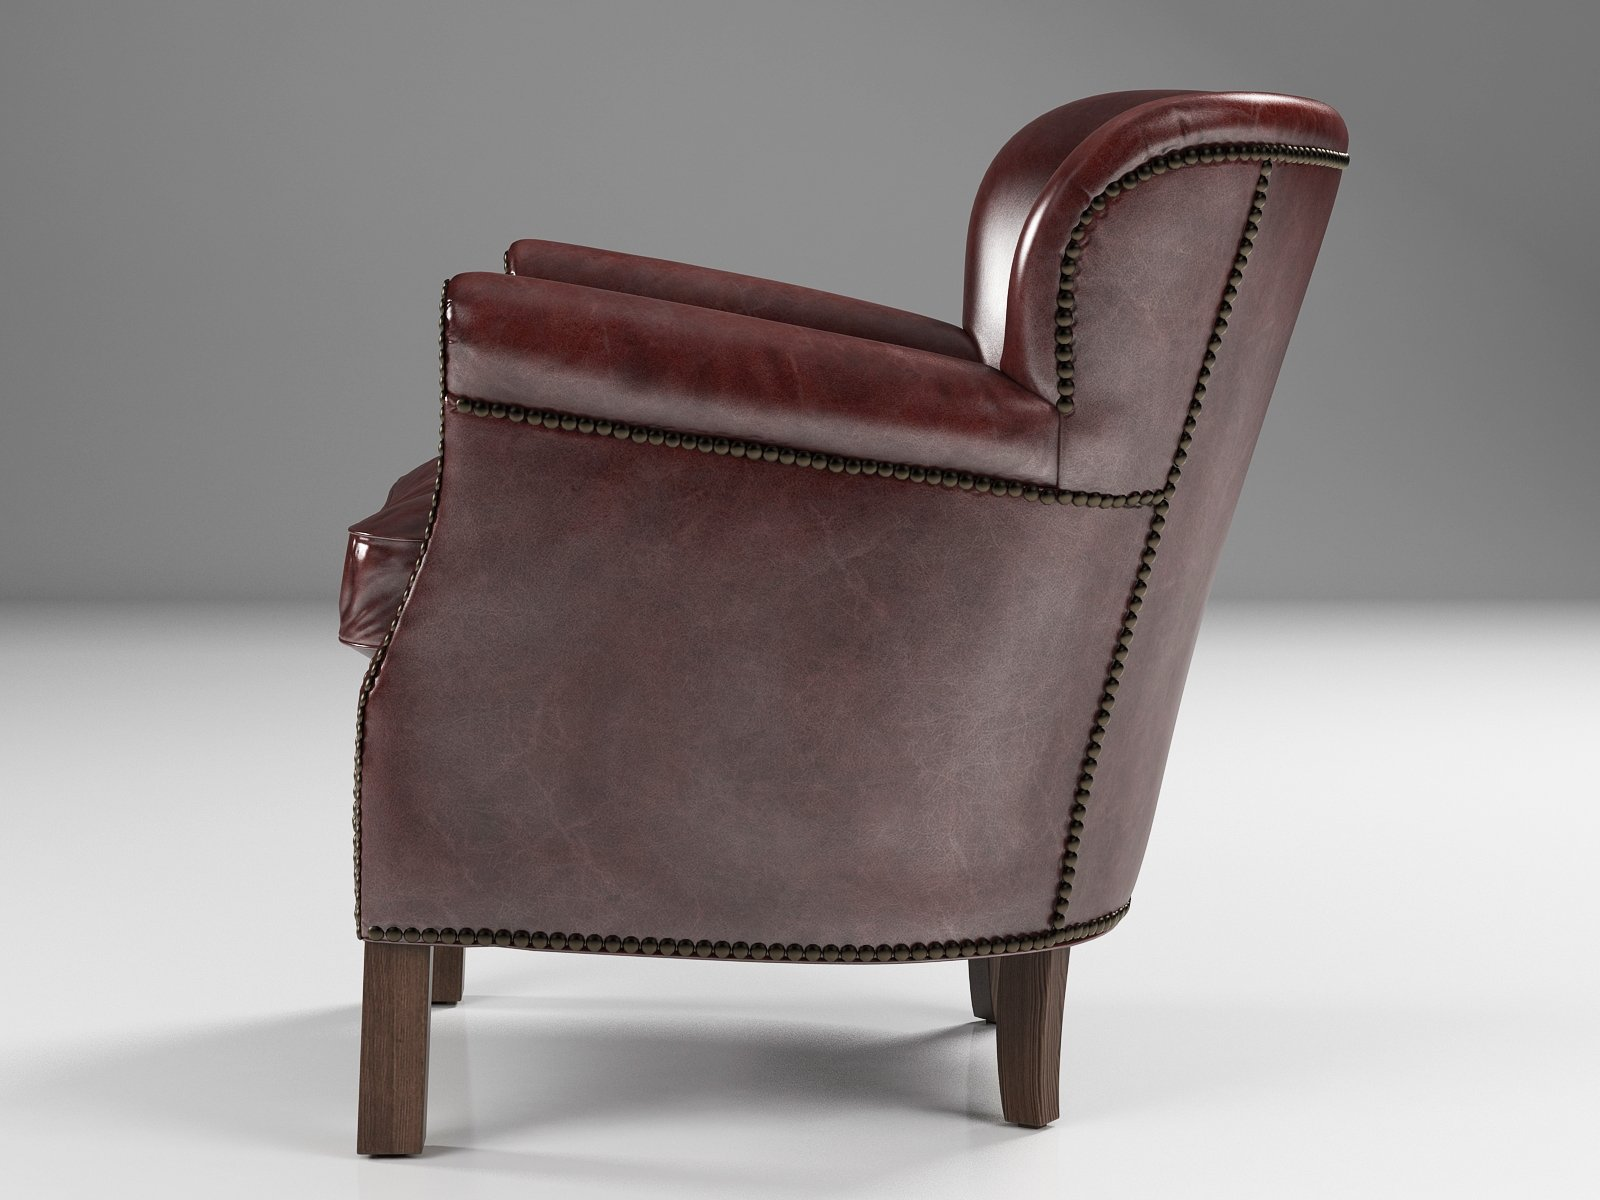 Professor 39 S Leather Chair With Nailheads 3d Model Restoration Hardware